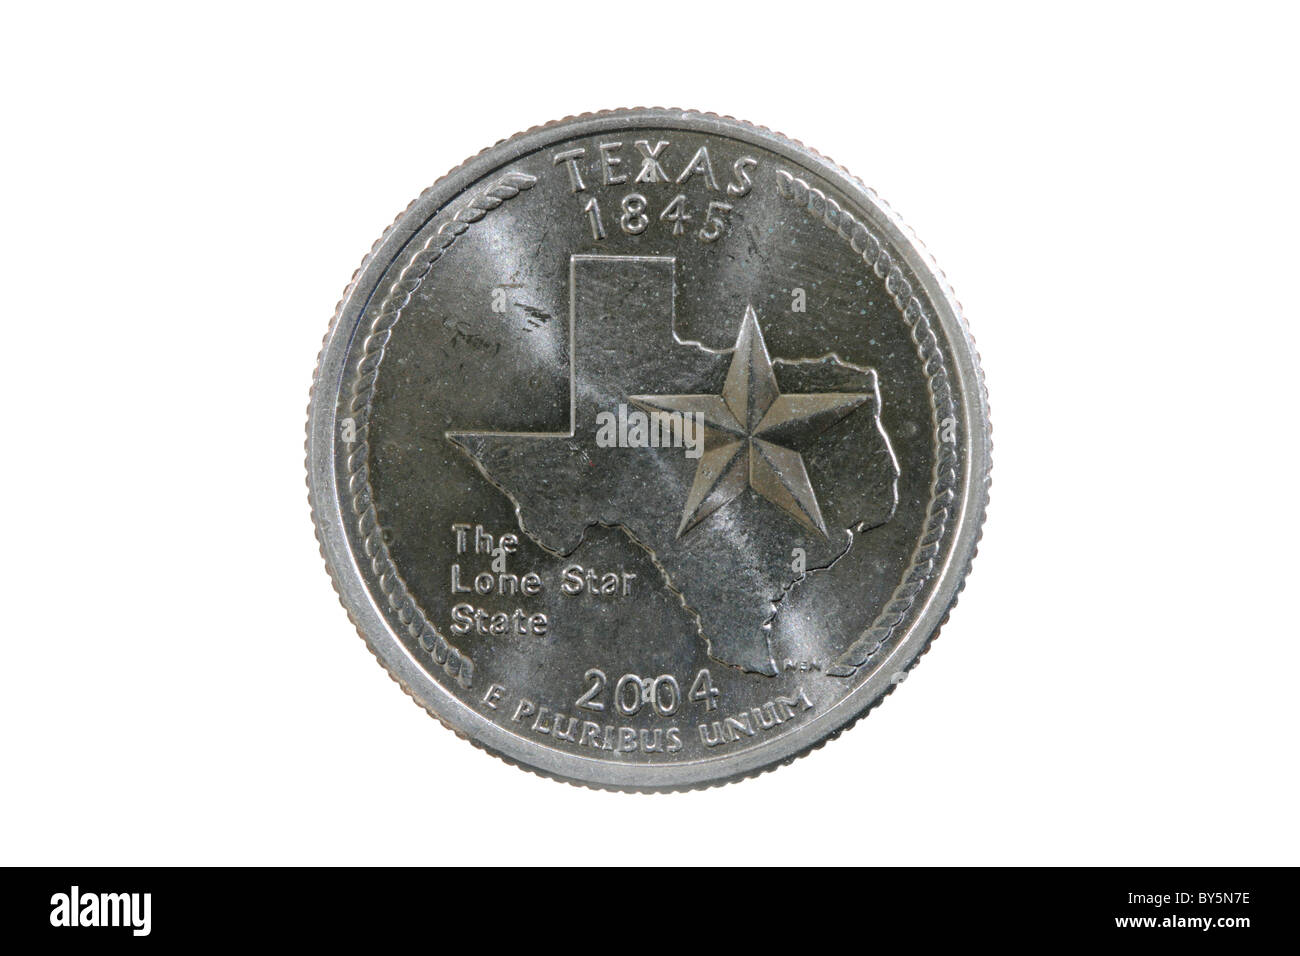 Texas state quarter coin isolated on white background - Stock Image